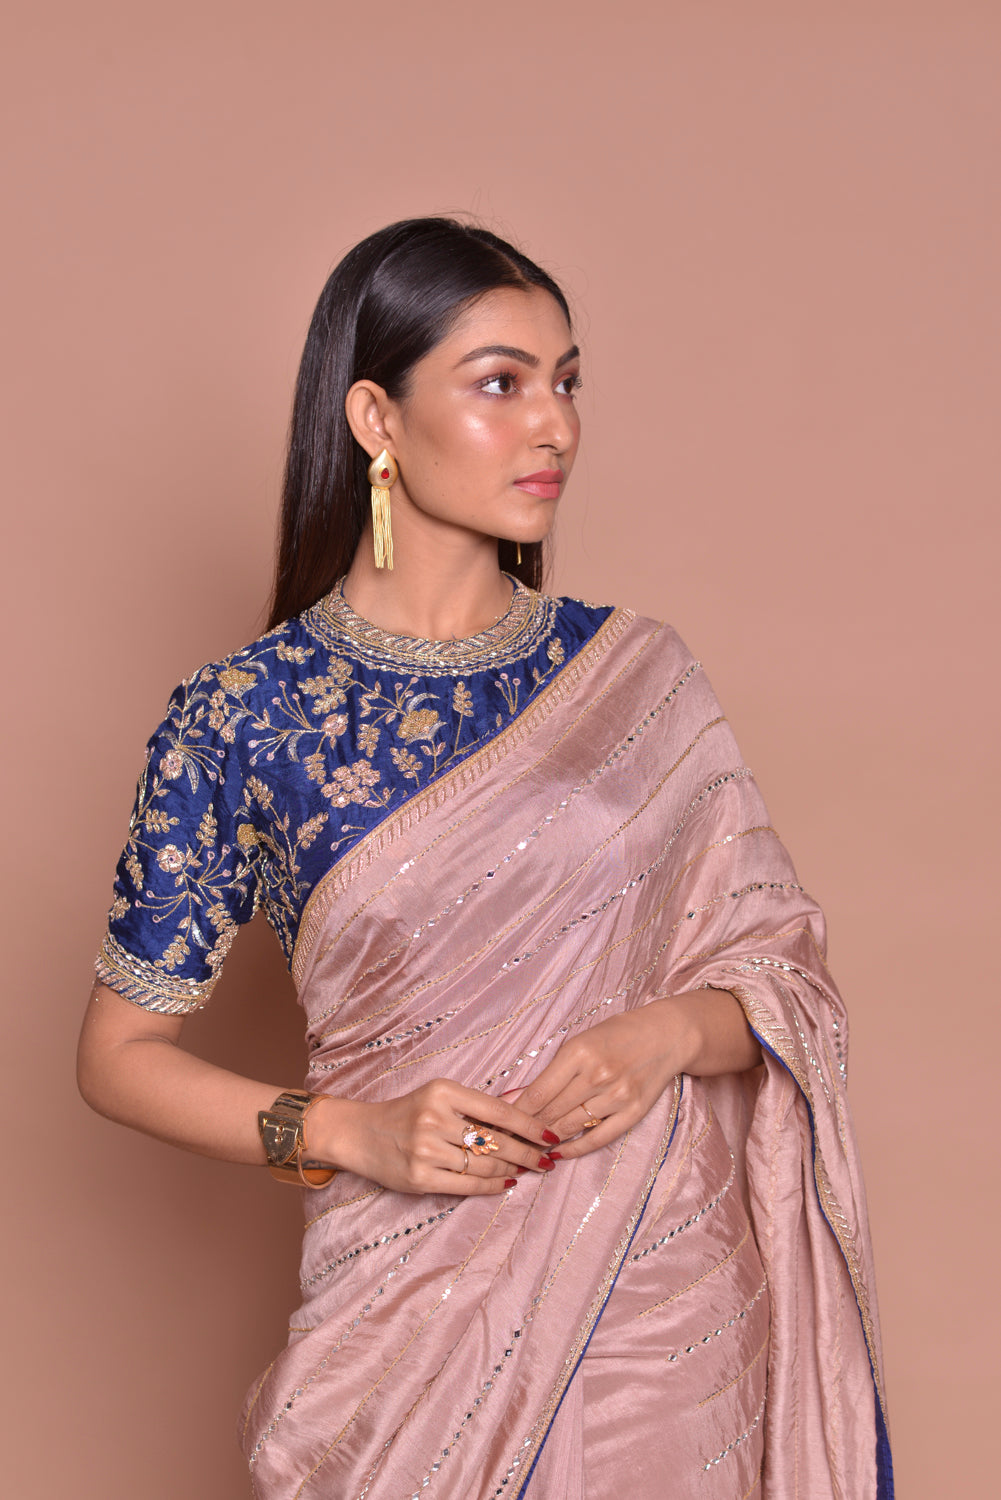 Buy gorgeous champagne pink embroidered sari online in USA with blue embroidered saree blouse. Look fashionable on special occasions in contemporary sarees, designer sarees with blouse, embroidered saris from Pure Elegance Indian luxury clothing store in USA.-closeup